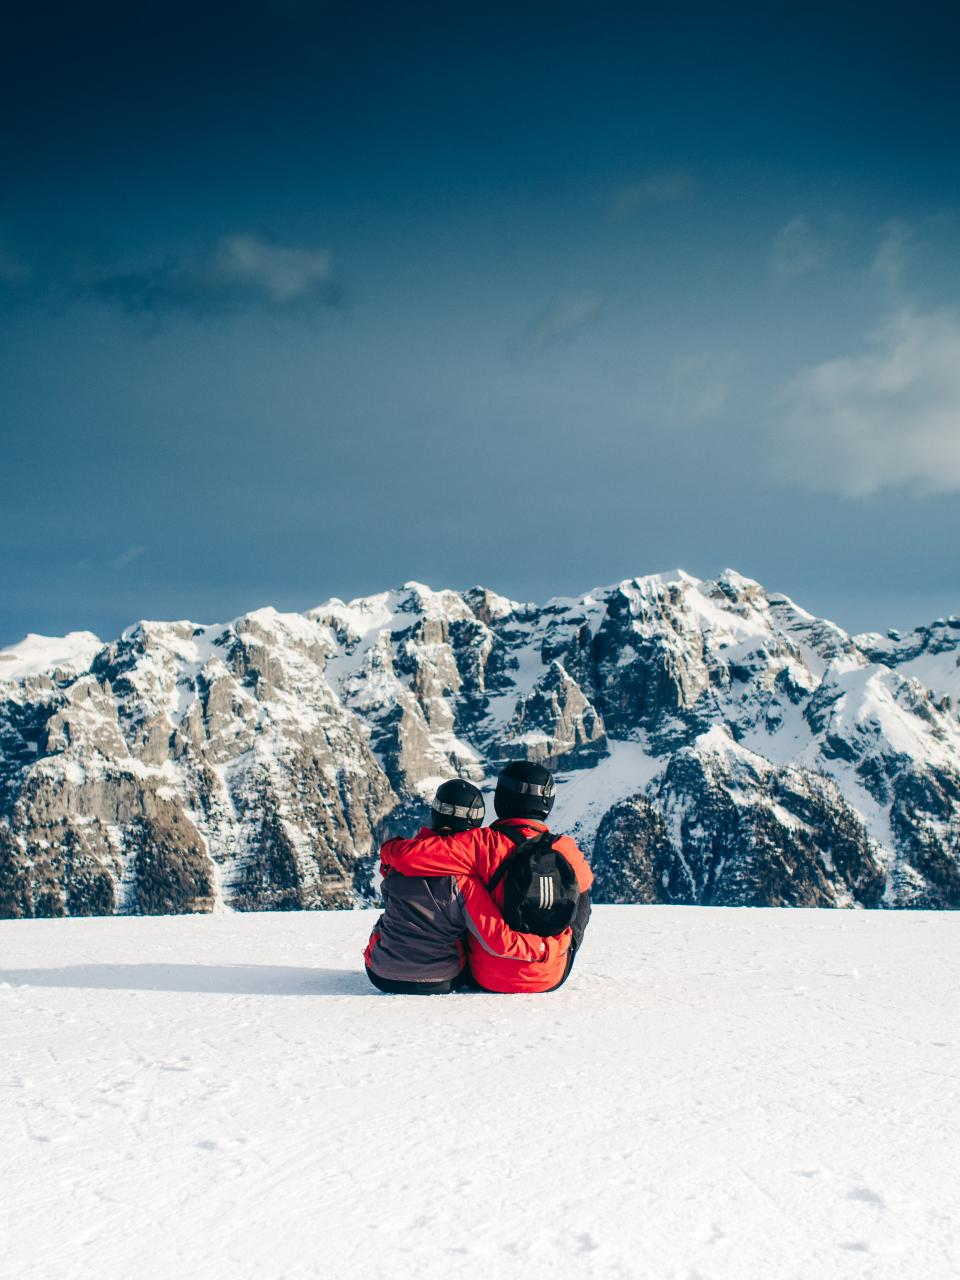 skiing snowboarding couple love romance hugging snow mountains peaks sky outdoors nature landscape